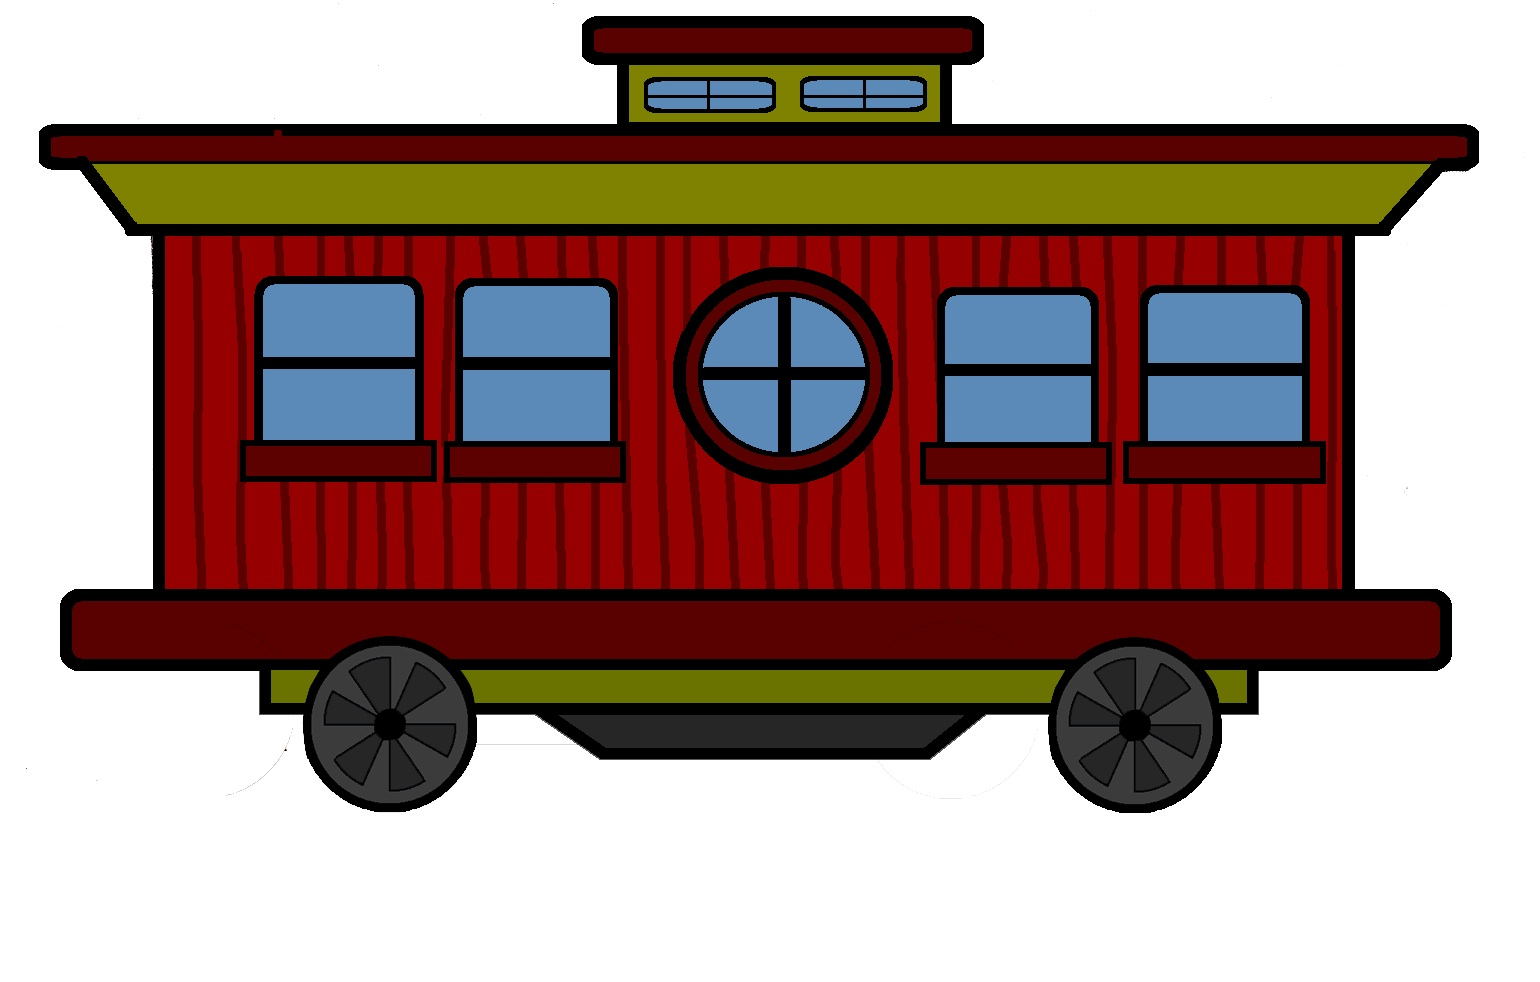 1540x982 27 Images Of Train Caboose Template